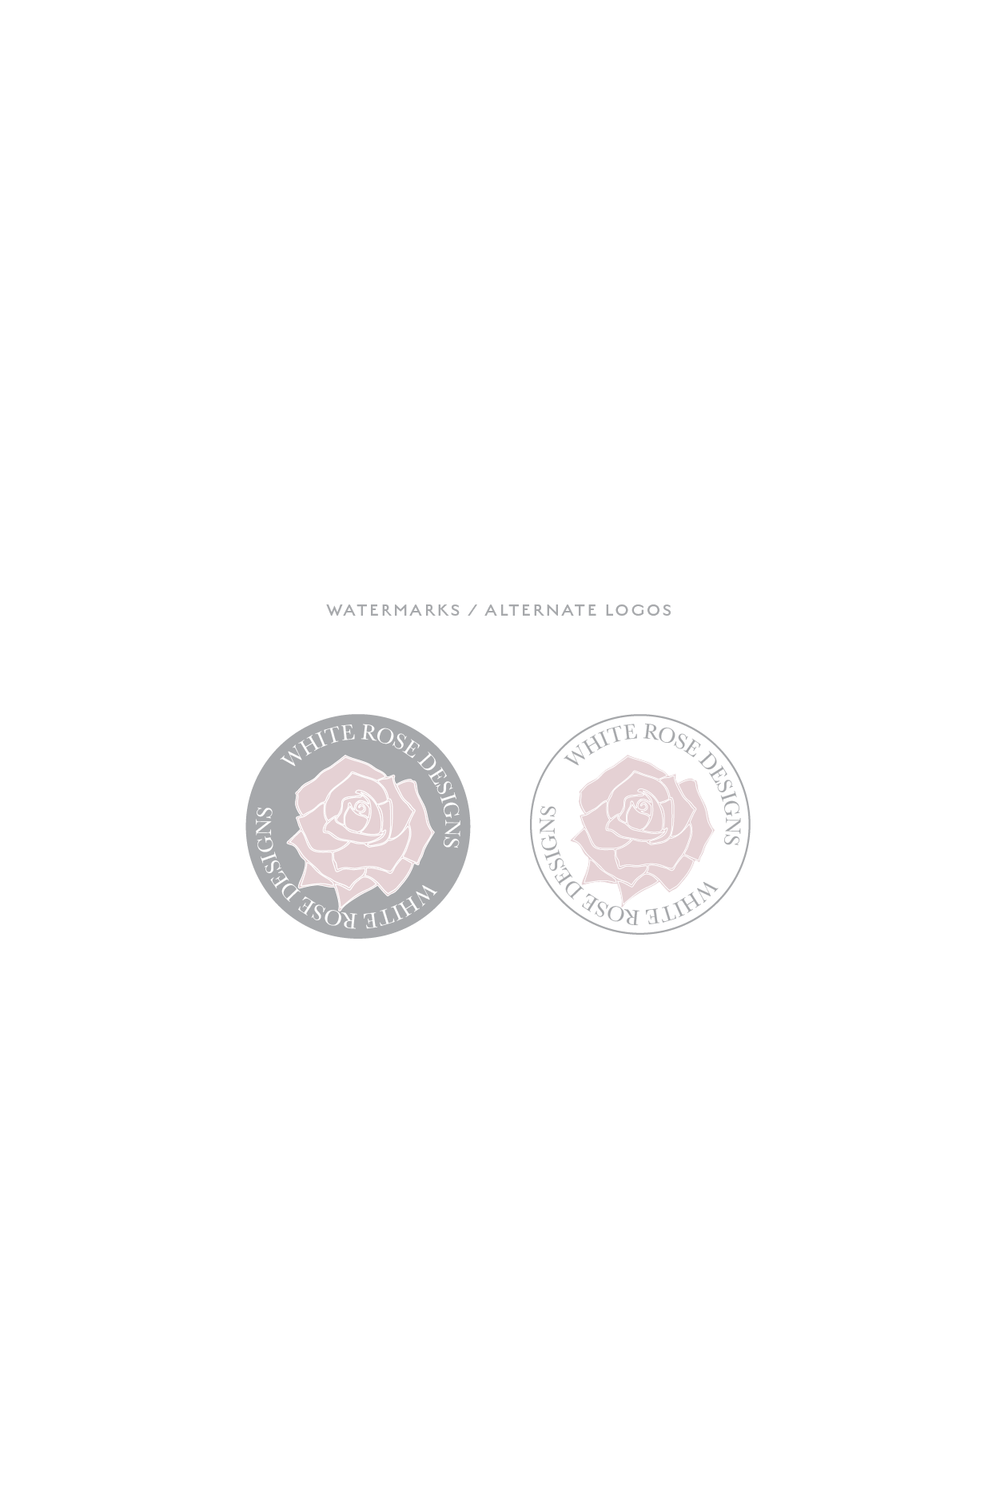 Pre Made Logo | White Rose Weddings brand board and watermarks